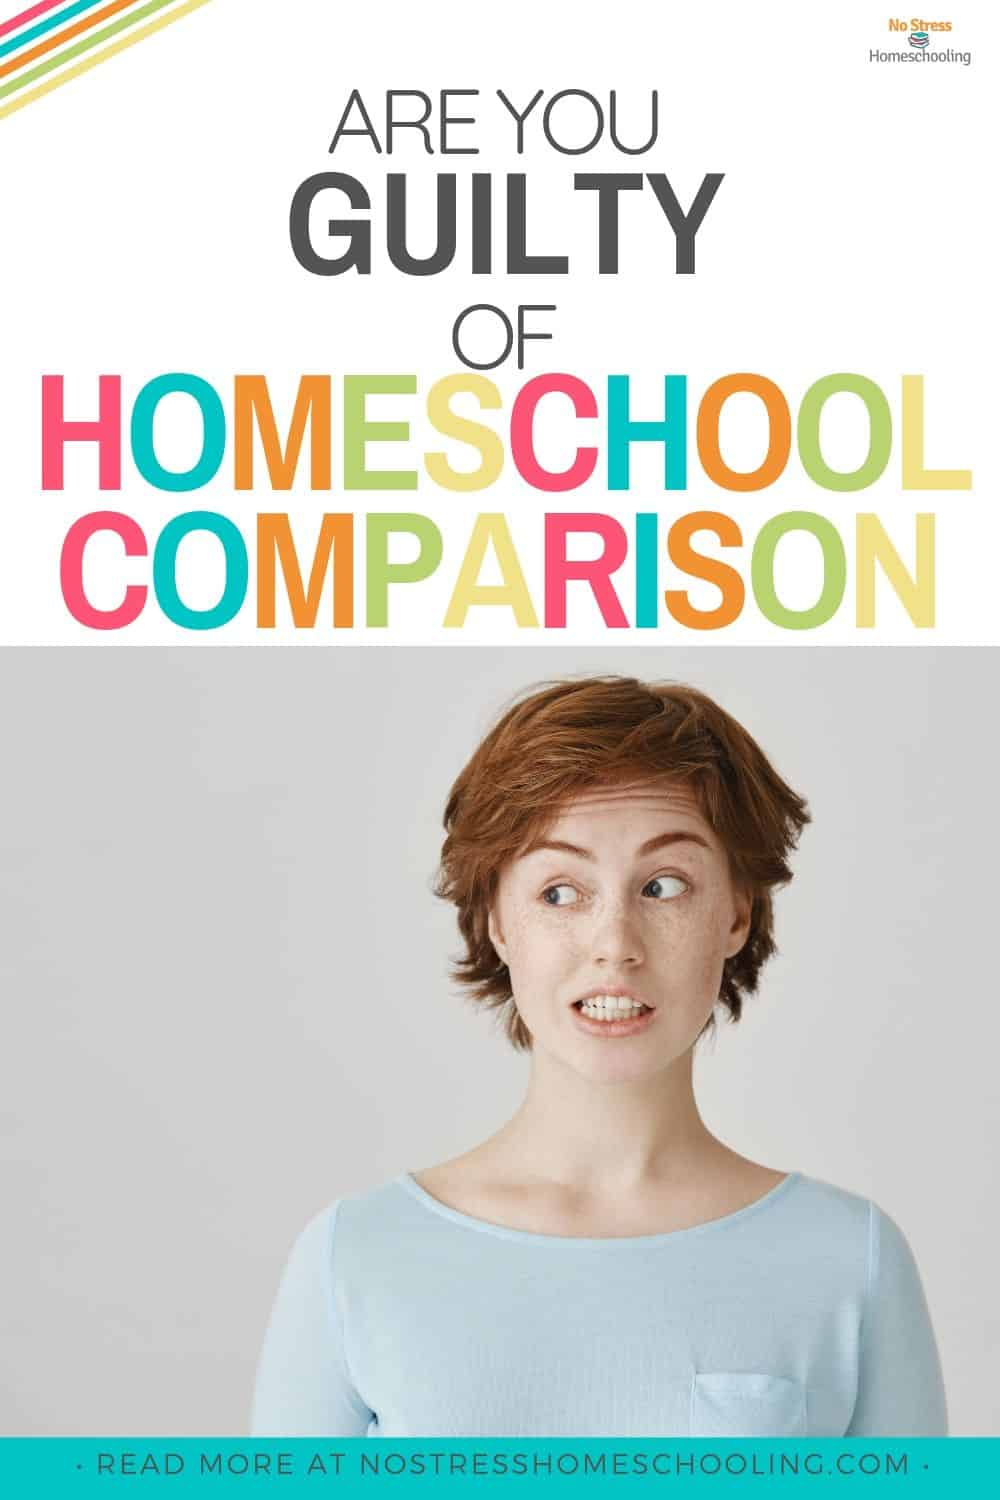 Guilty of homeschooling comparison? Here's how to solve this homeschooling problem